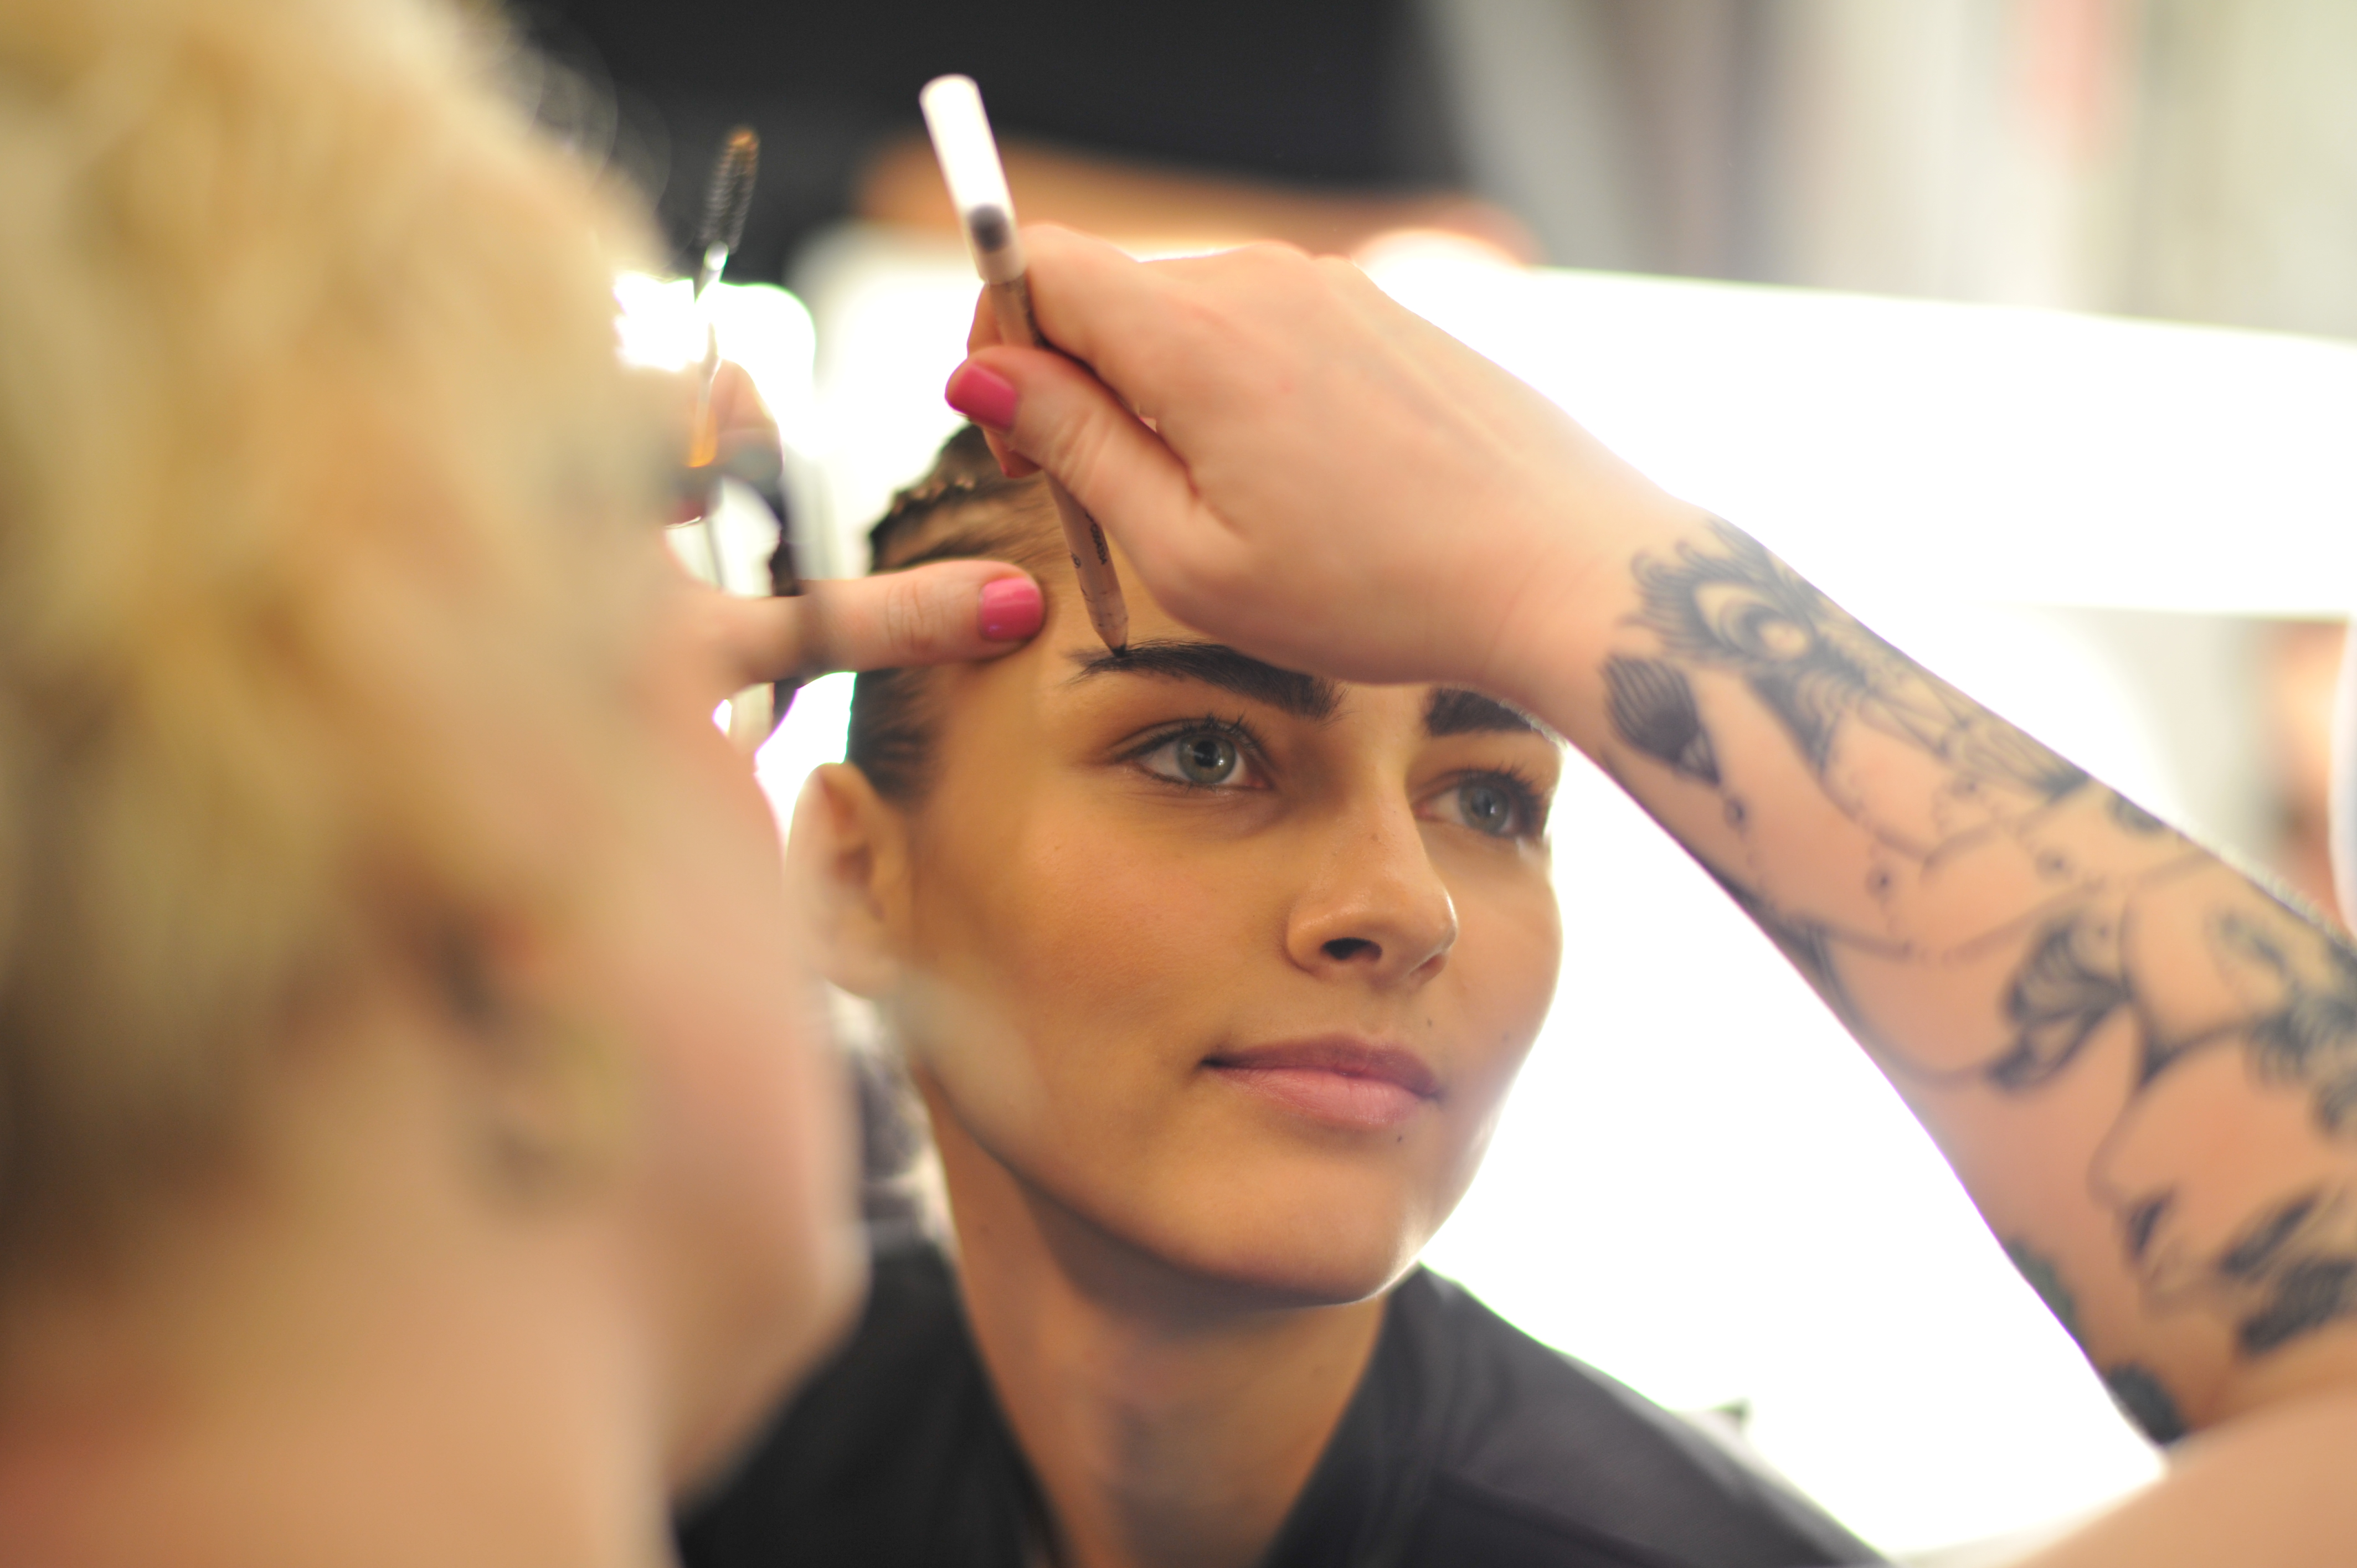 A model getting her makeup done.